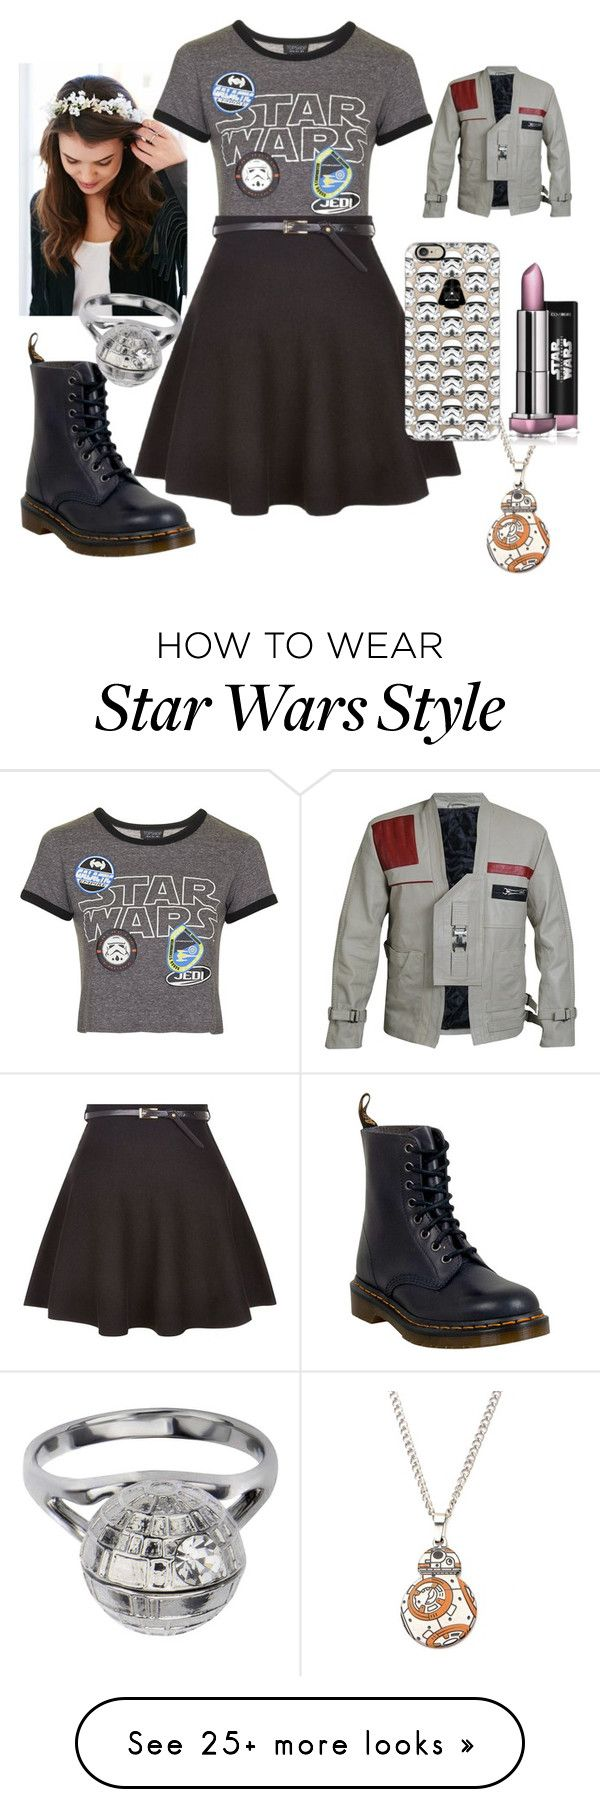 """""""#ContestOnTheGo #ContestEntry"""" by rwendland on Polyvore featuring Urban Outfitters, Topshop, Dr. Martens, Casetify, contestentry and ContestOnTheGo"""